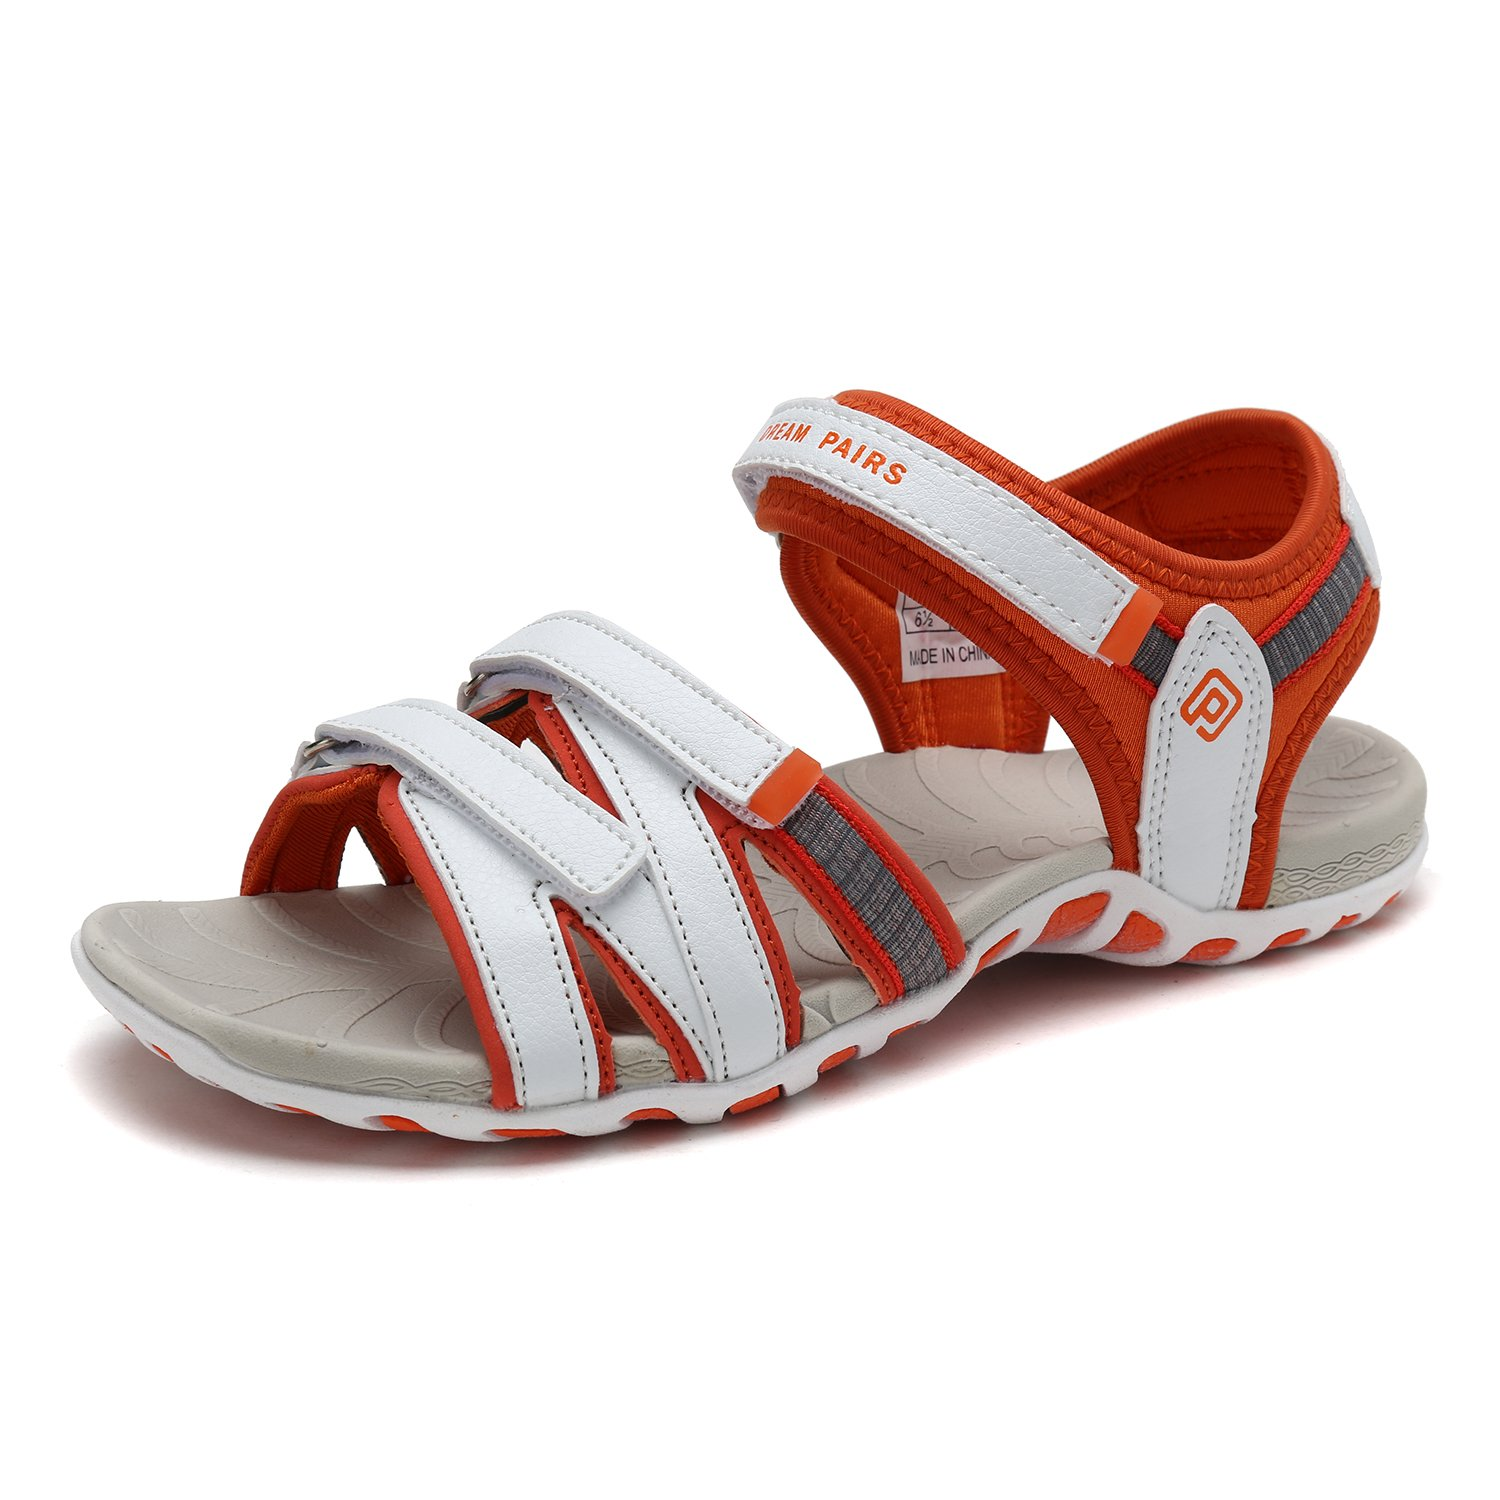 DREAM PAIRS Women's 160912-W Adventurous Summer Outdoor Sandals B0788V6QXN 5.5 B(M) US|White/Orange